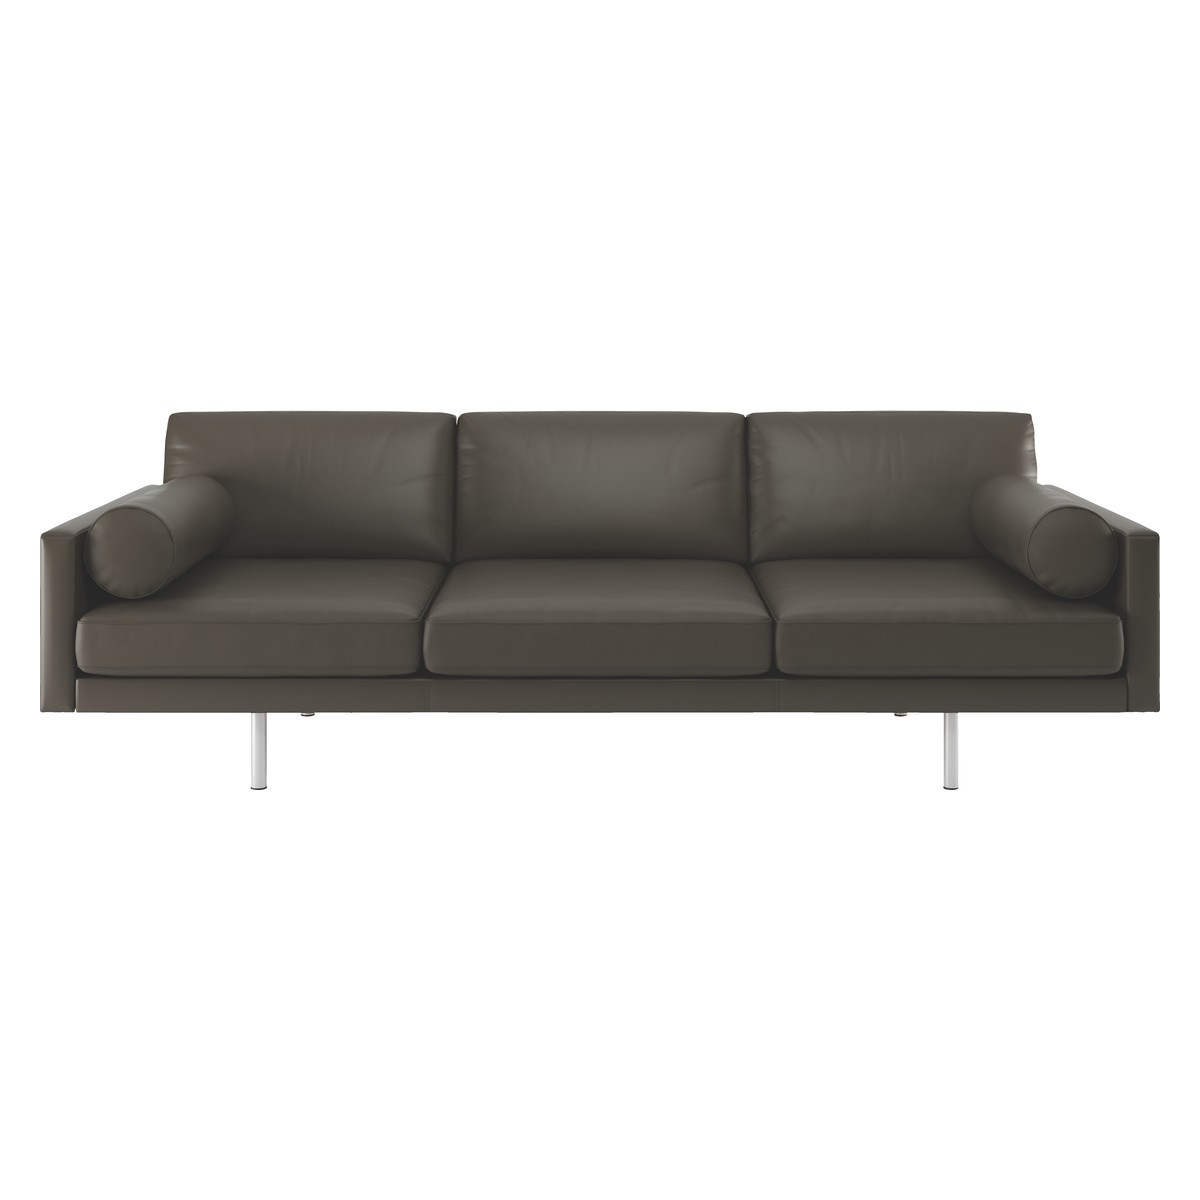 Spencer Grey Leather 4 Seater Sofa Metal Legs Buy Now At Habitat Uk With Regard To 4 Seater Sofas (Image 15 of 15)